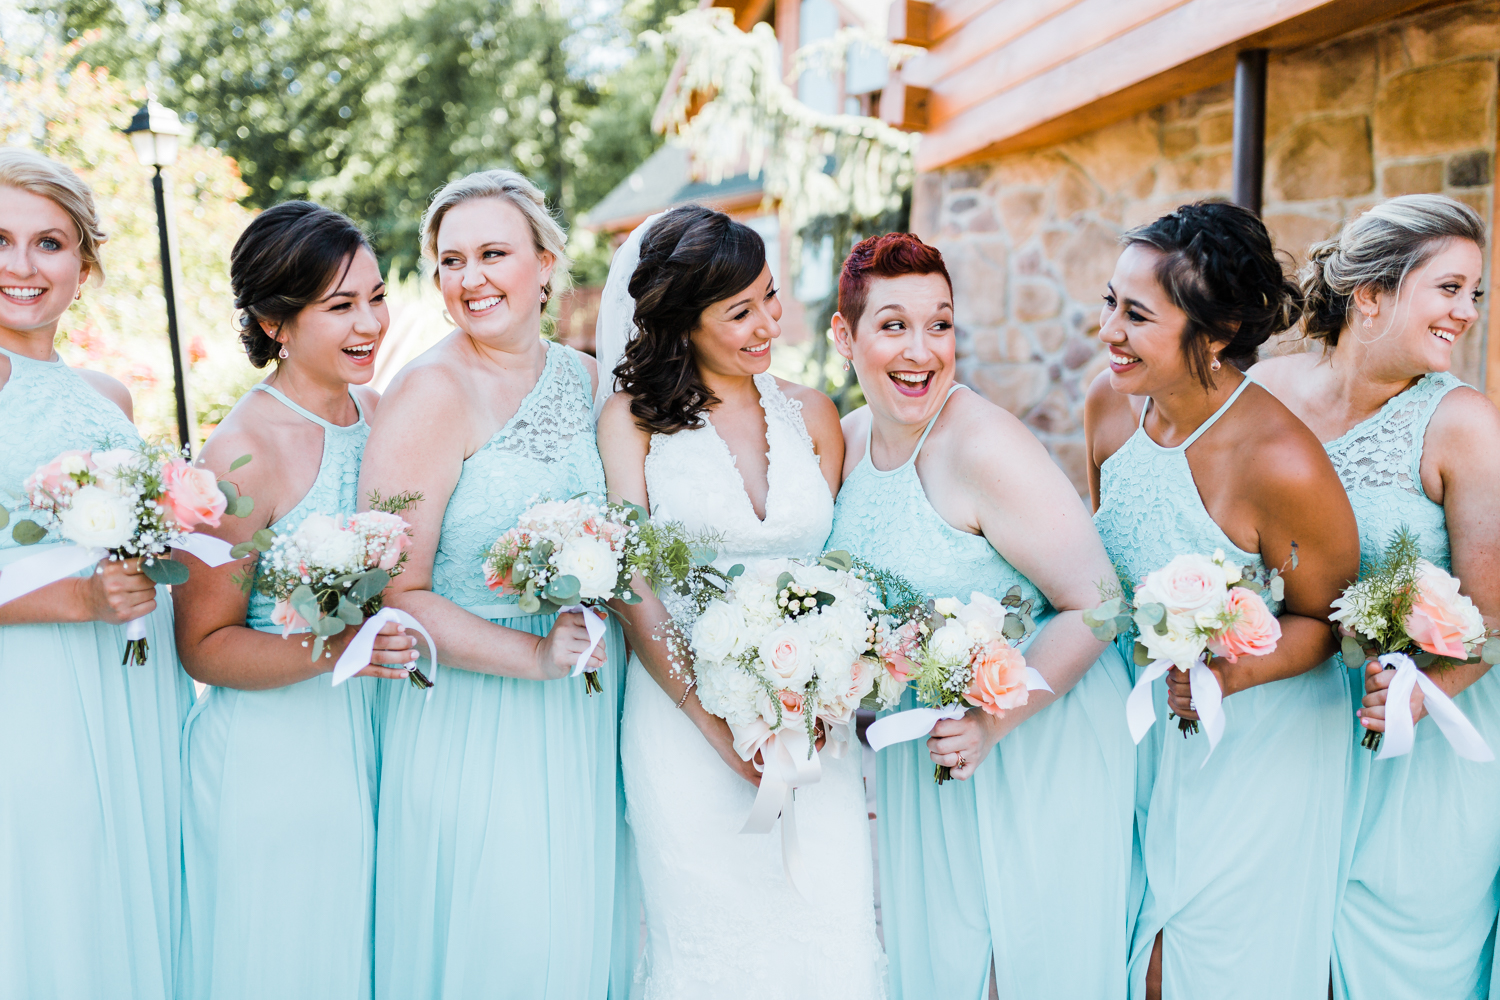 mint bridesmaids mix n match dresses - bright weddings - mountain wedding venues in MD and PA